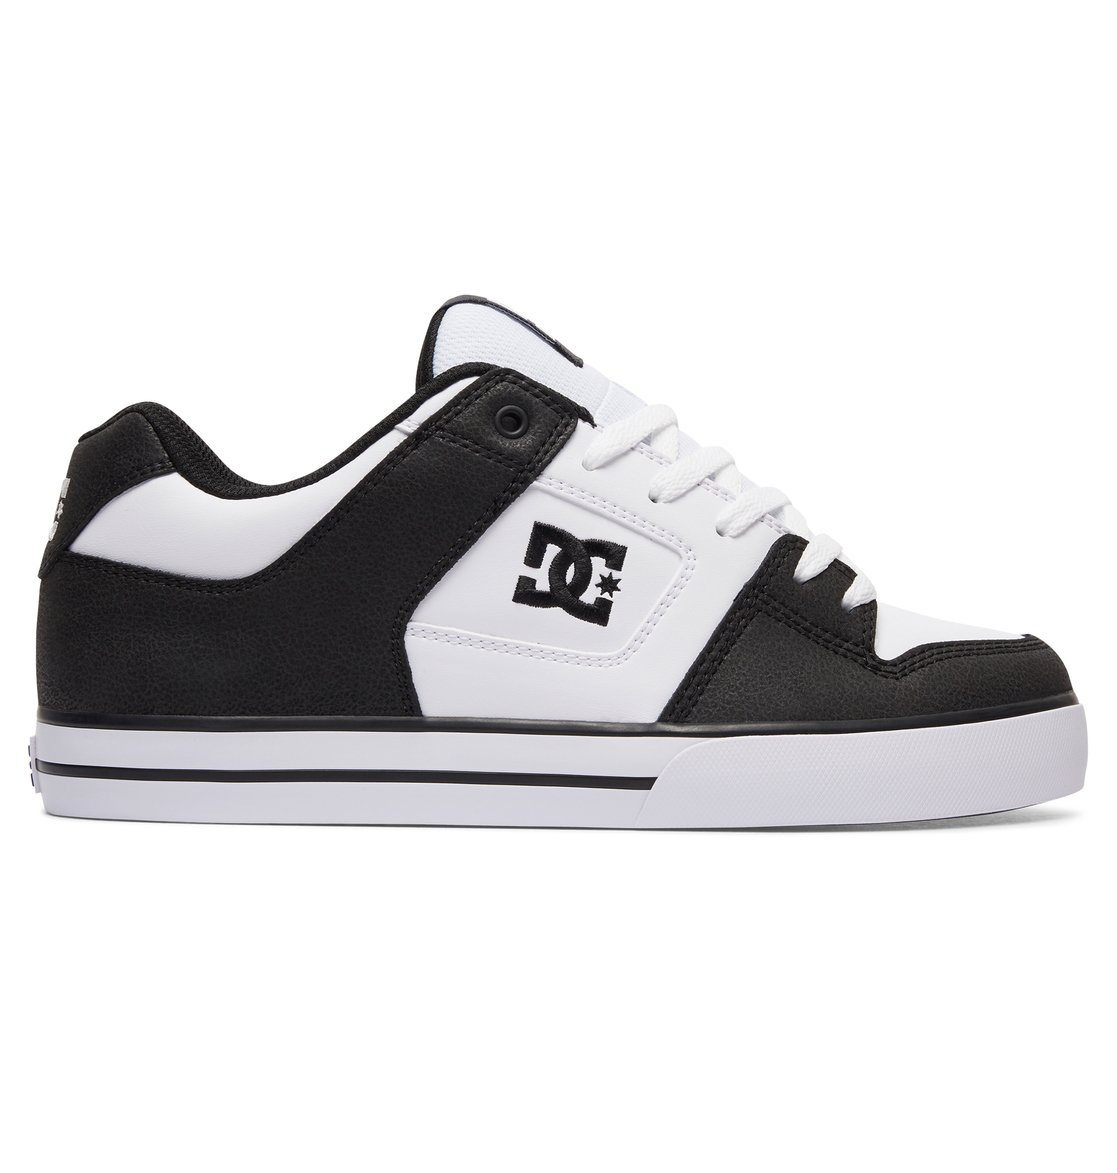 DC Shoes Men's Pure M Low Top Shoes White Black (XKWK) 11